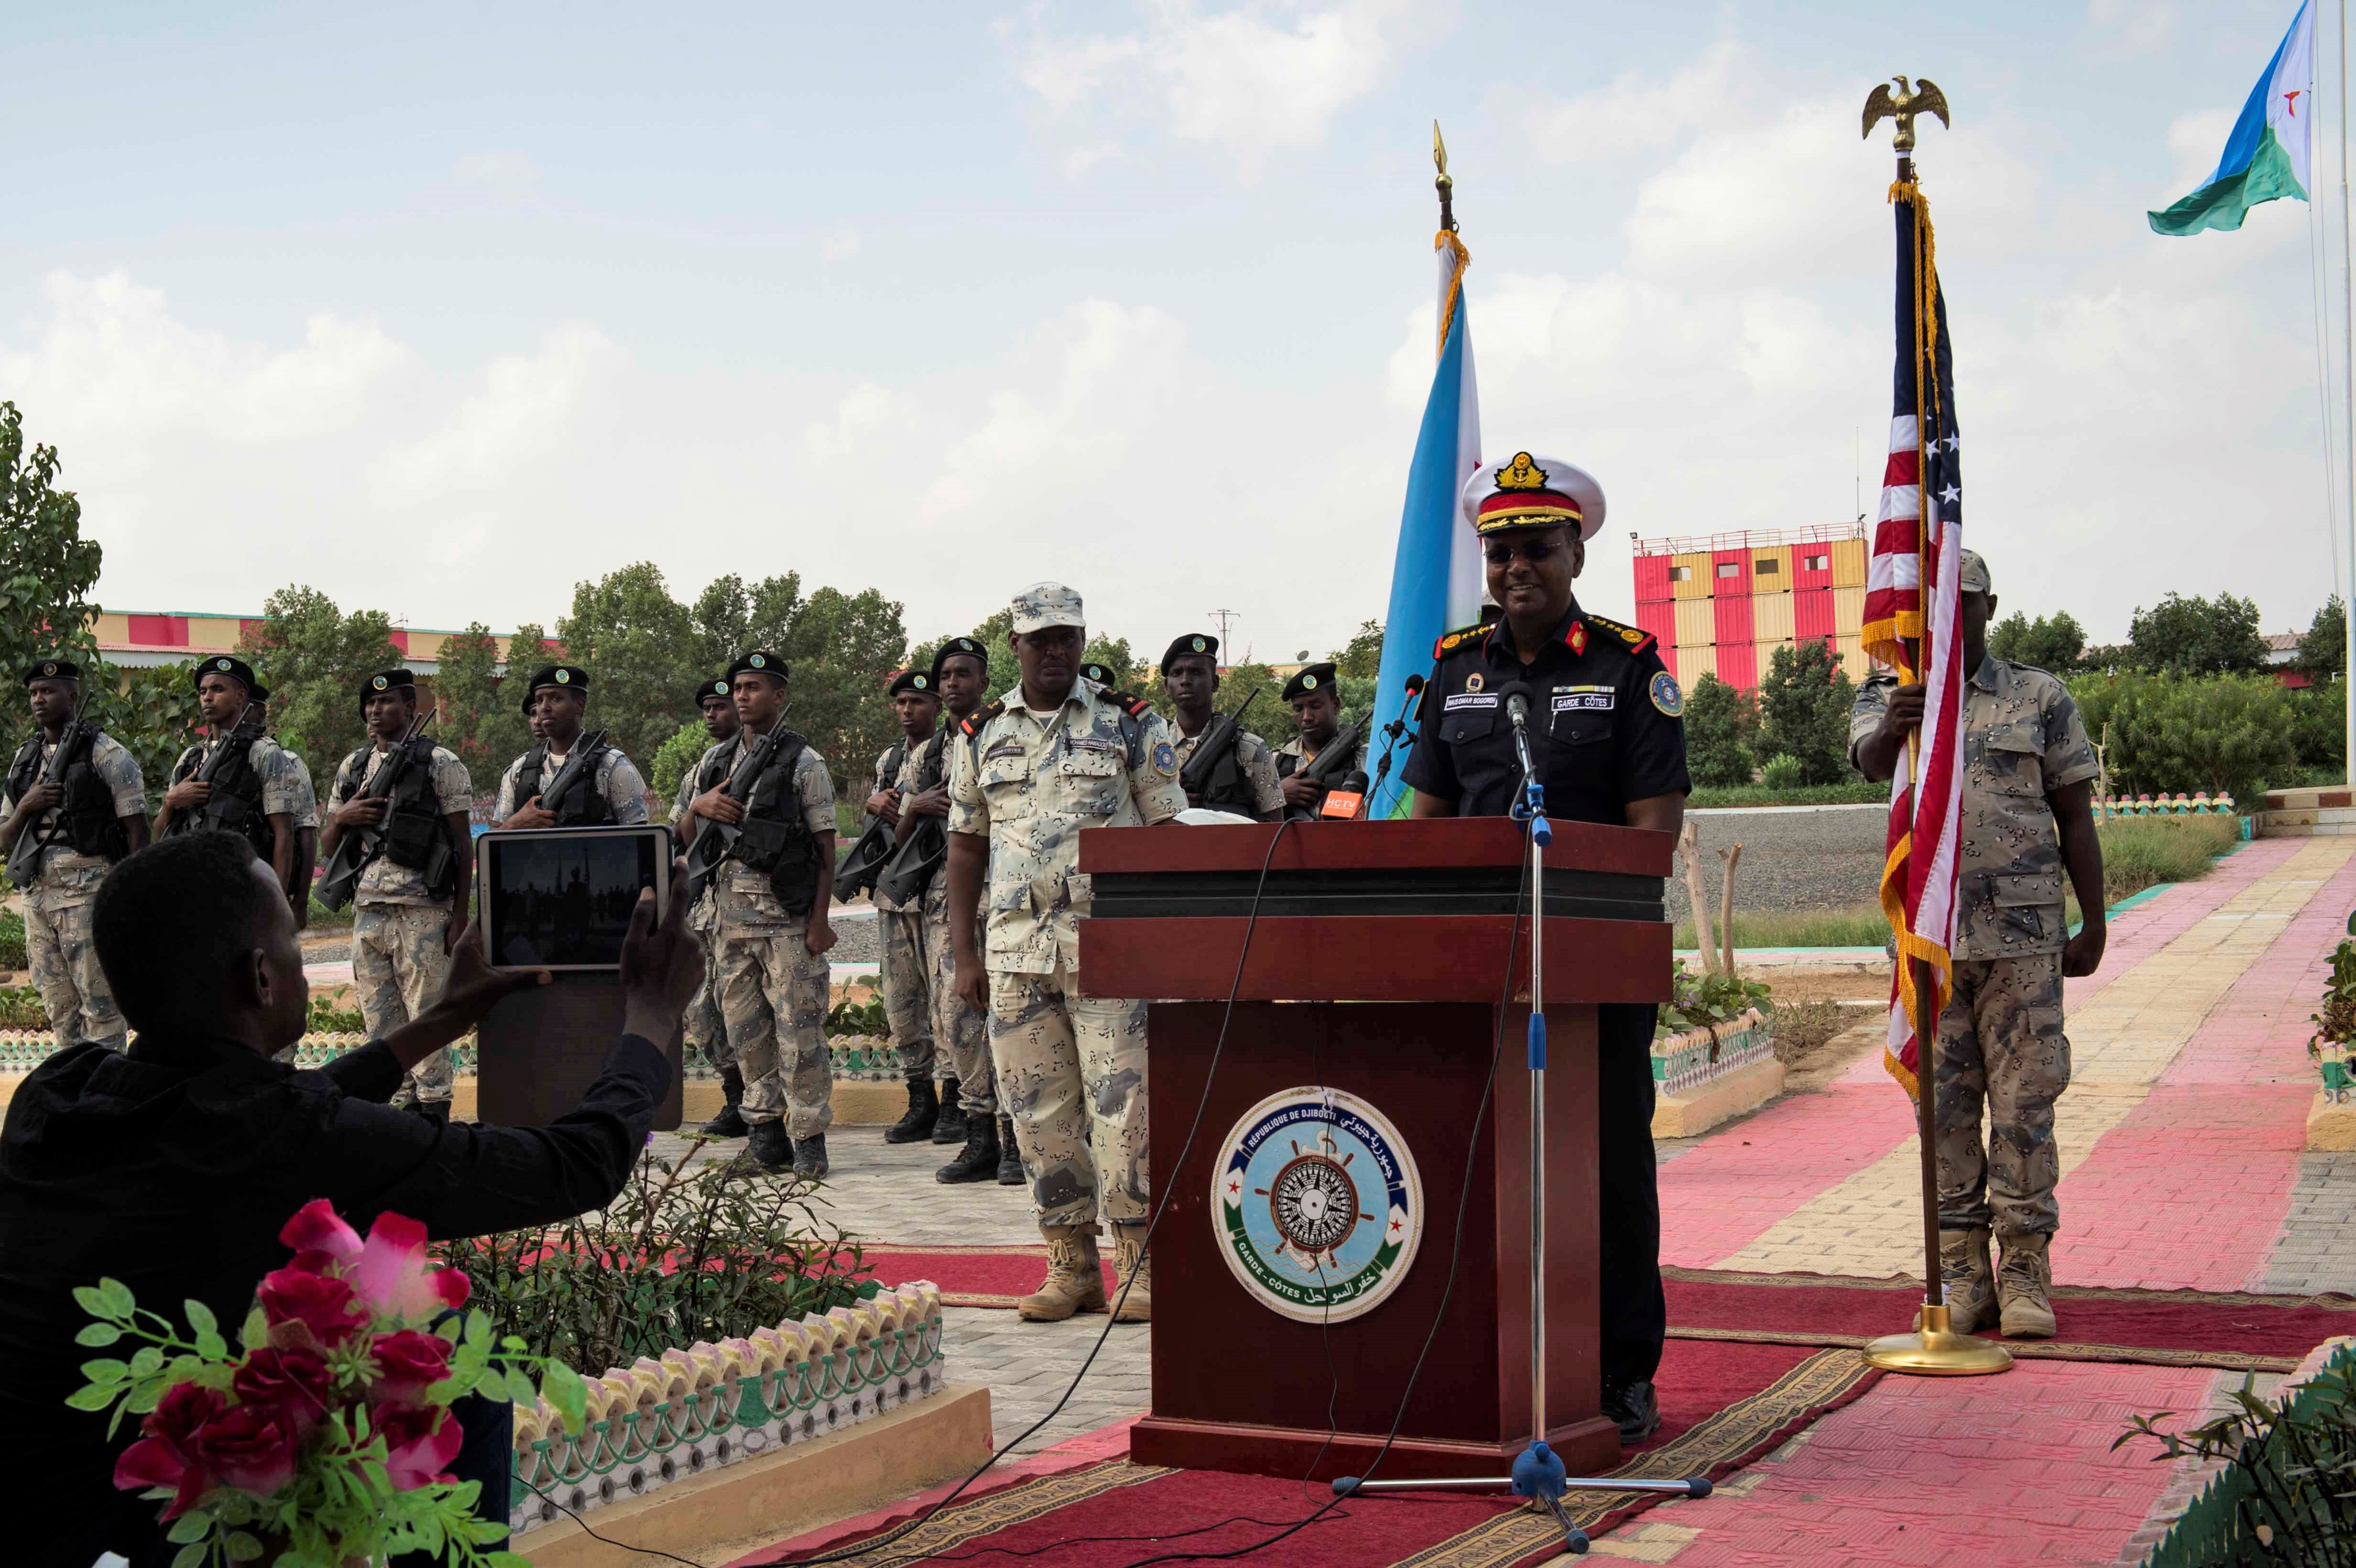 180131-N-KP948-204 DJIBOUTI, Djibouti (Jan. 31, 2018) Djiboutian Col. Was Omar Bogoreh, commander, Djiboutian Coast Guard, gives remarks during the opening ceremony for exercise Cutlass Express 2018 Jan. 31 in Djibouti, Djibouti. Cutlass Express is designed to improve regional cooperation, maritime domain awareness and information sharing practices to increase capabilities between the U.S., East African and Western Indian Ocean nations. (U.S. Navy photo by Mass Communication Specialist 2nd Class Alyssa Weeks / Released)